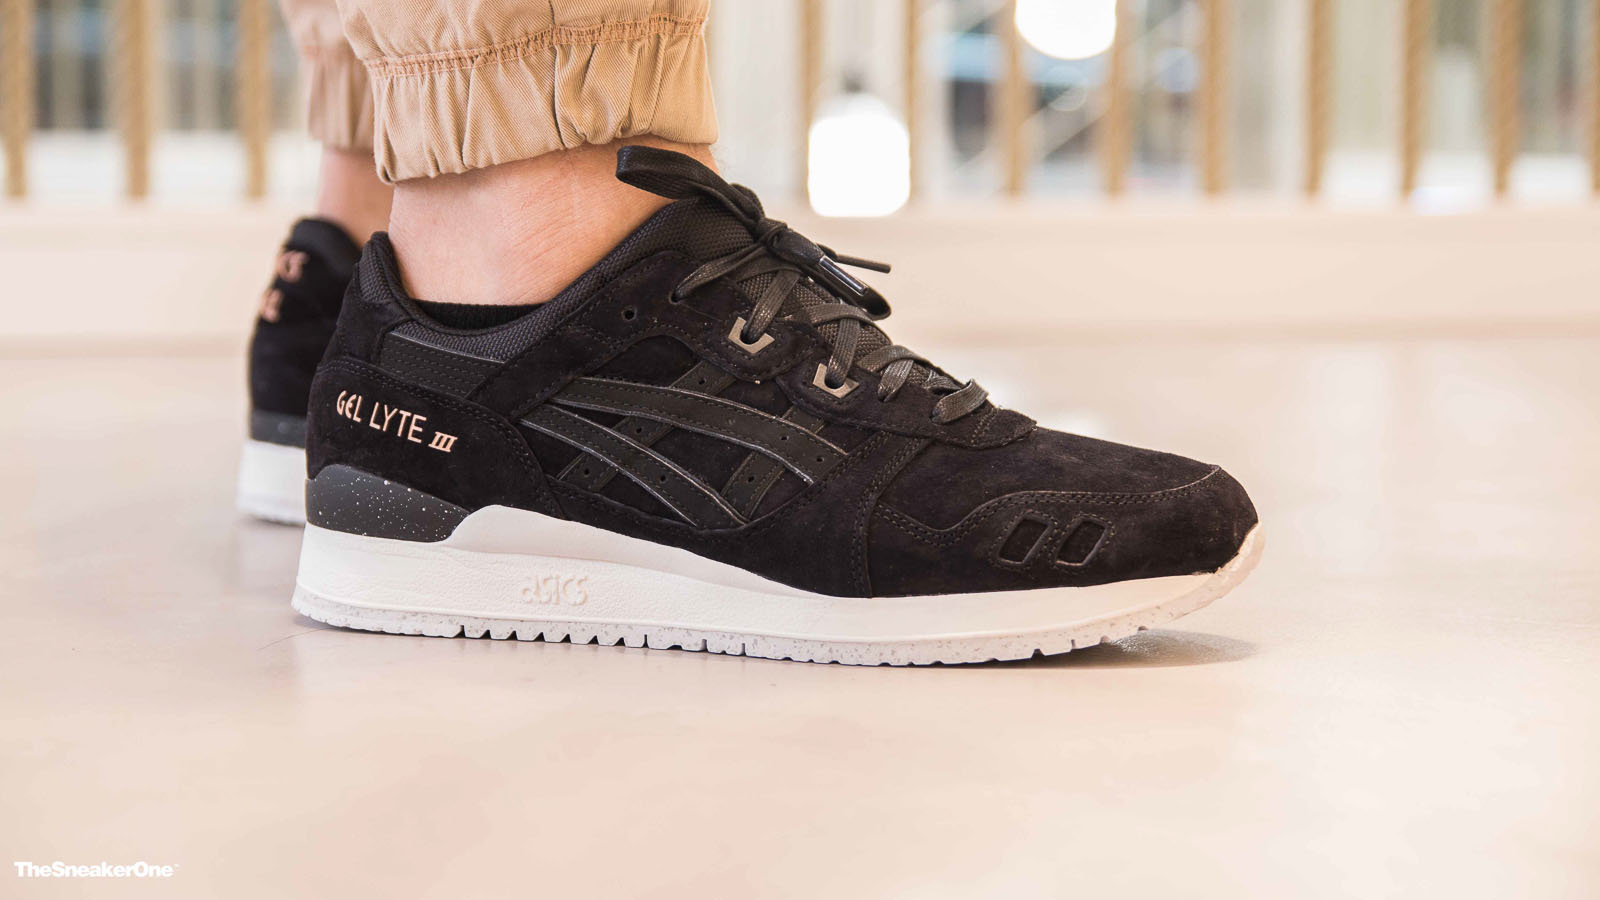 asics gel lyte iii rose gold pack blog thesneakerone. Black Bedroom Furniture Sets. Home Design Ideas